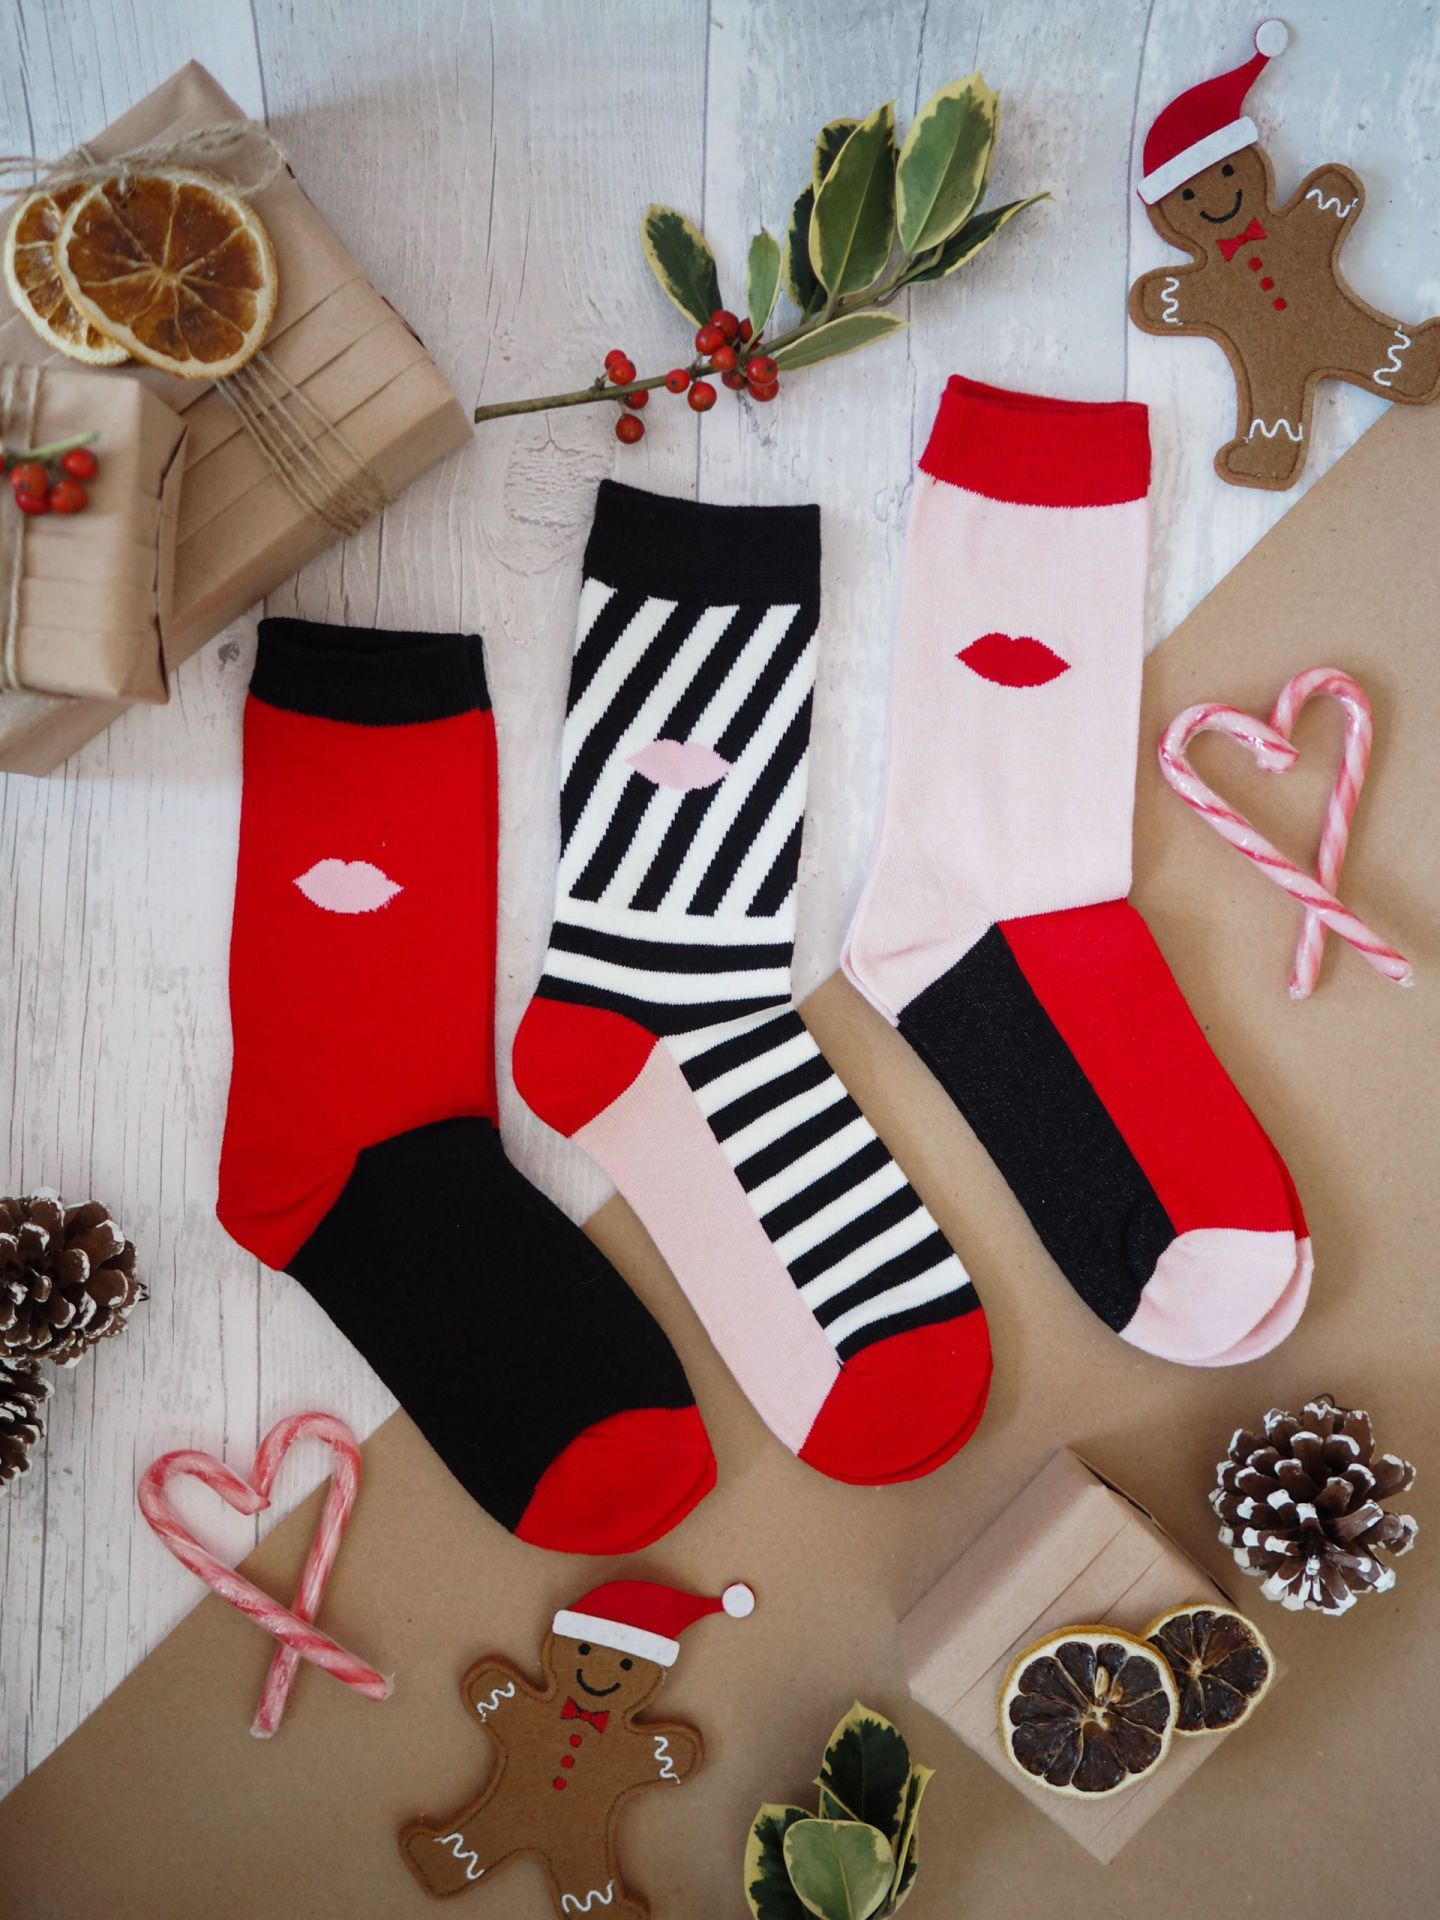 Lulu Guinness - 3 Pairs of Boxed Kiss and Cat Socks Ladies